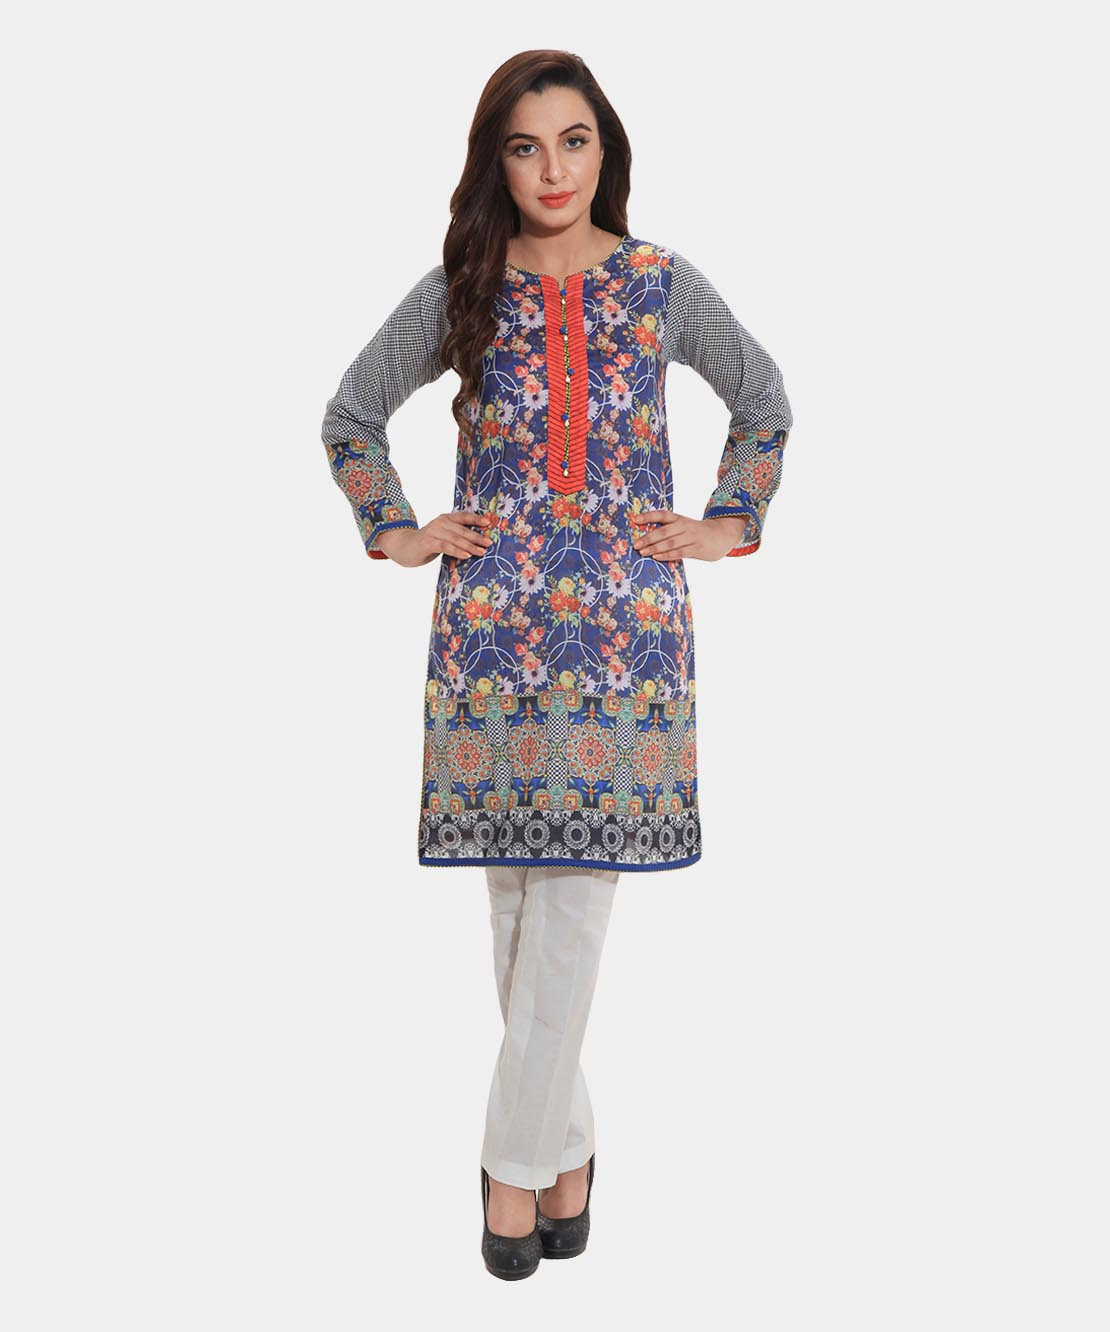 Pearly Night Blue Shirt By Bareeze For Eid 2016